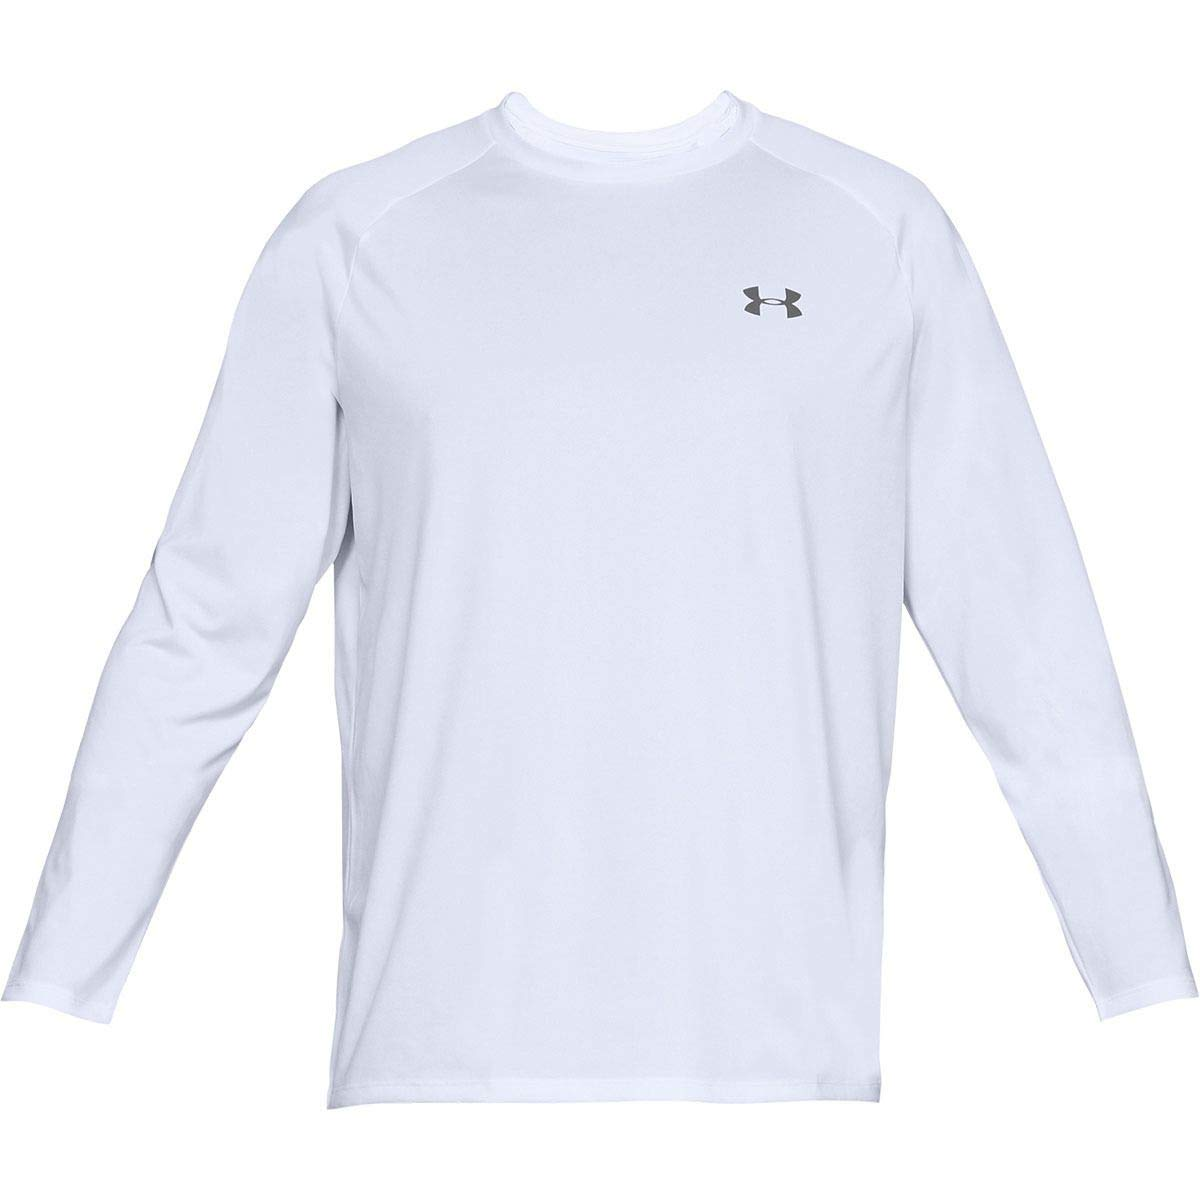 Under Armour Tech 2.0 Long-Sleeve Shirt - Men's White/Graphite, XS